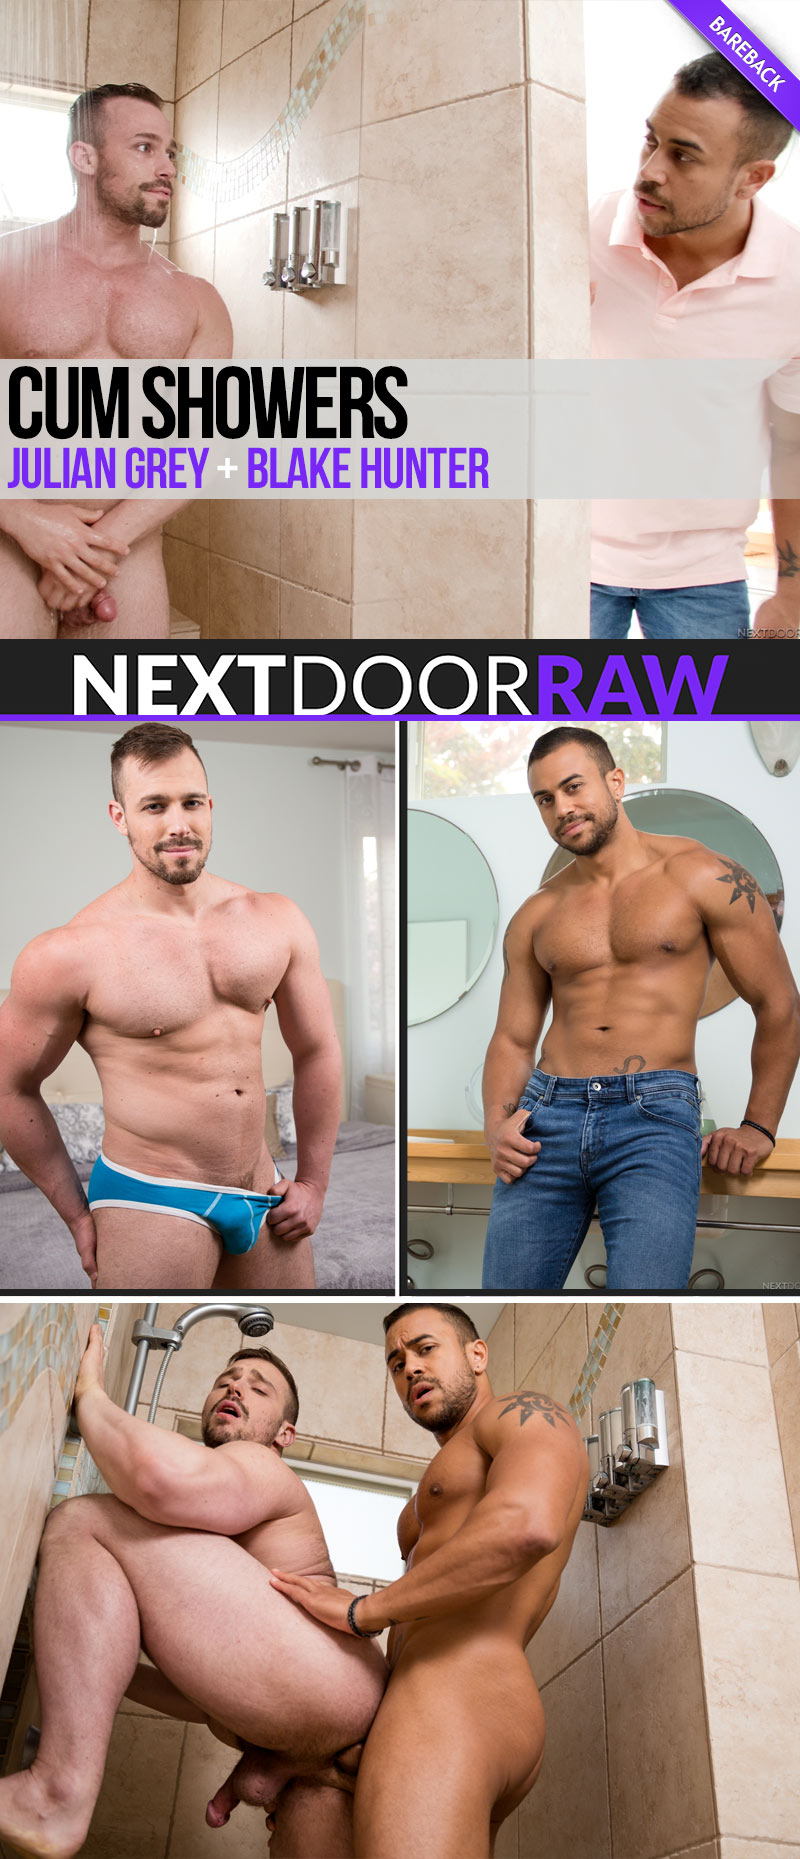 Cum Showers (Julian Grey and Blake Hunter Flip-Fuck) at NextDoorRAW!